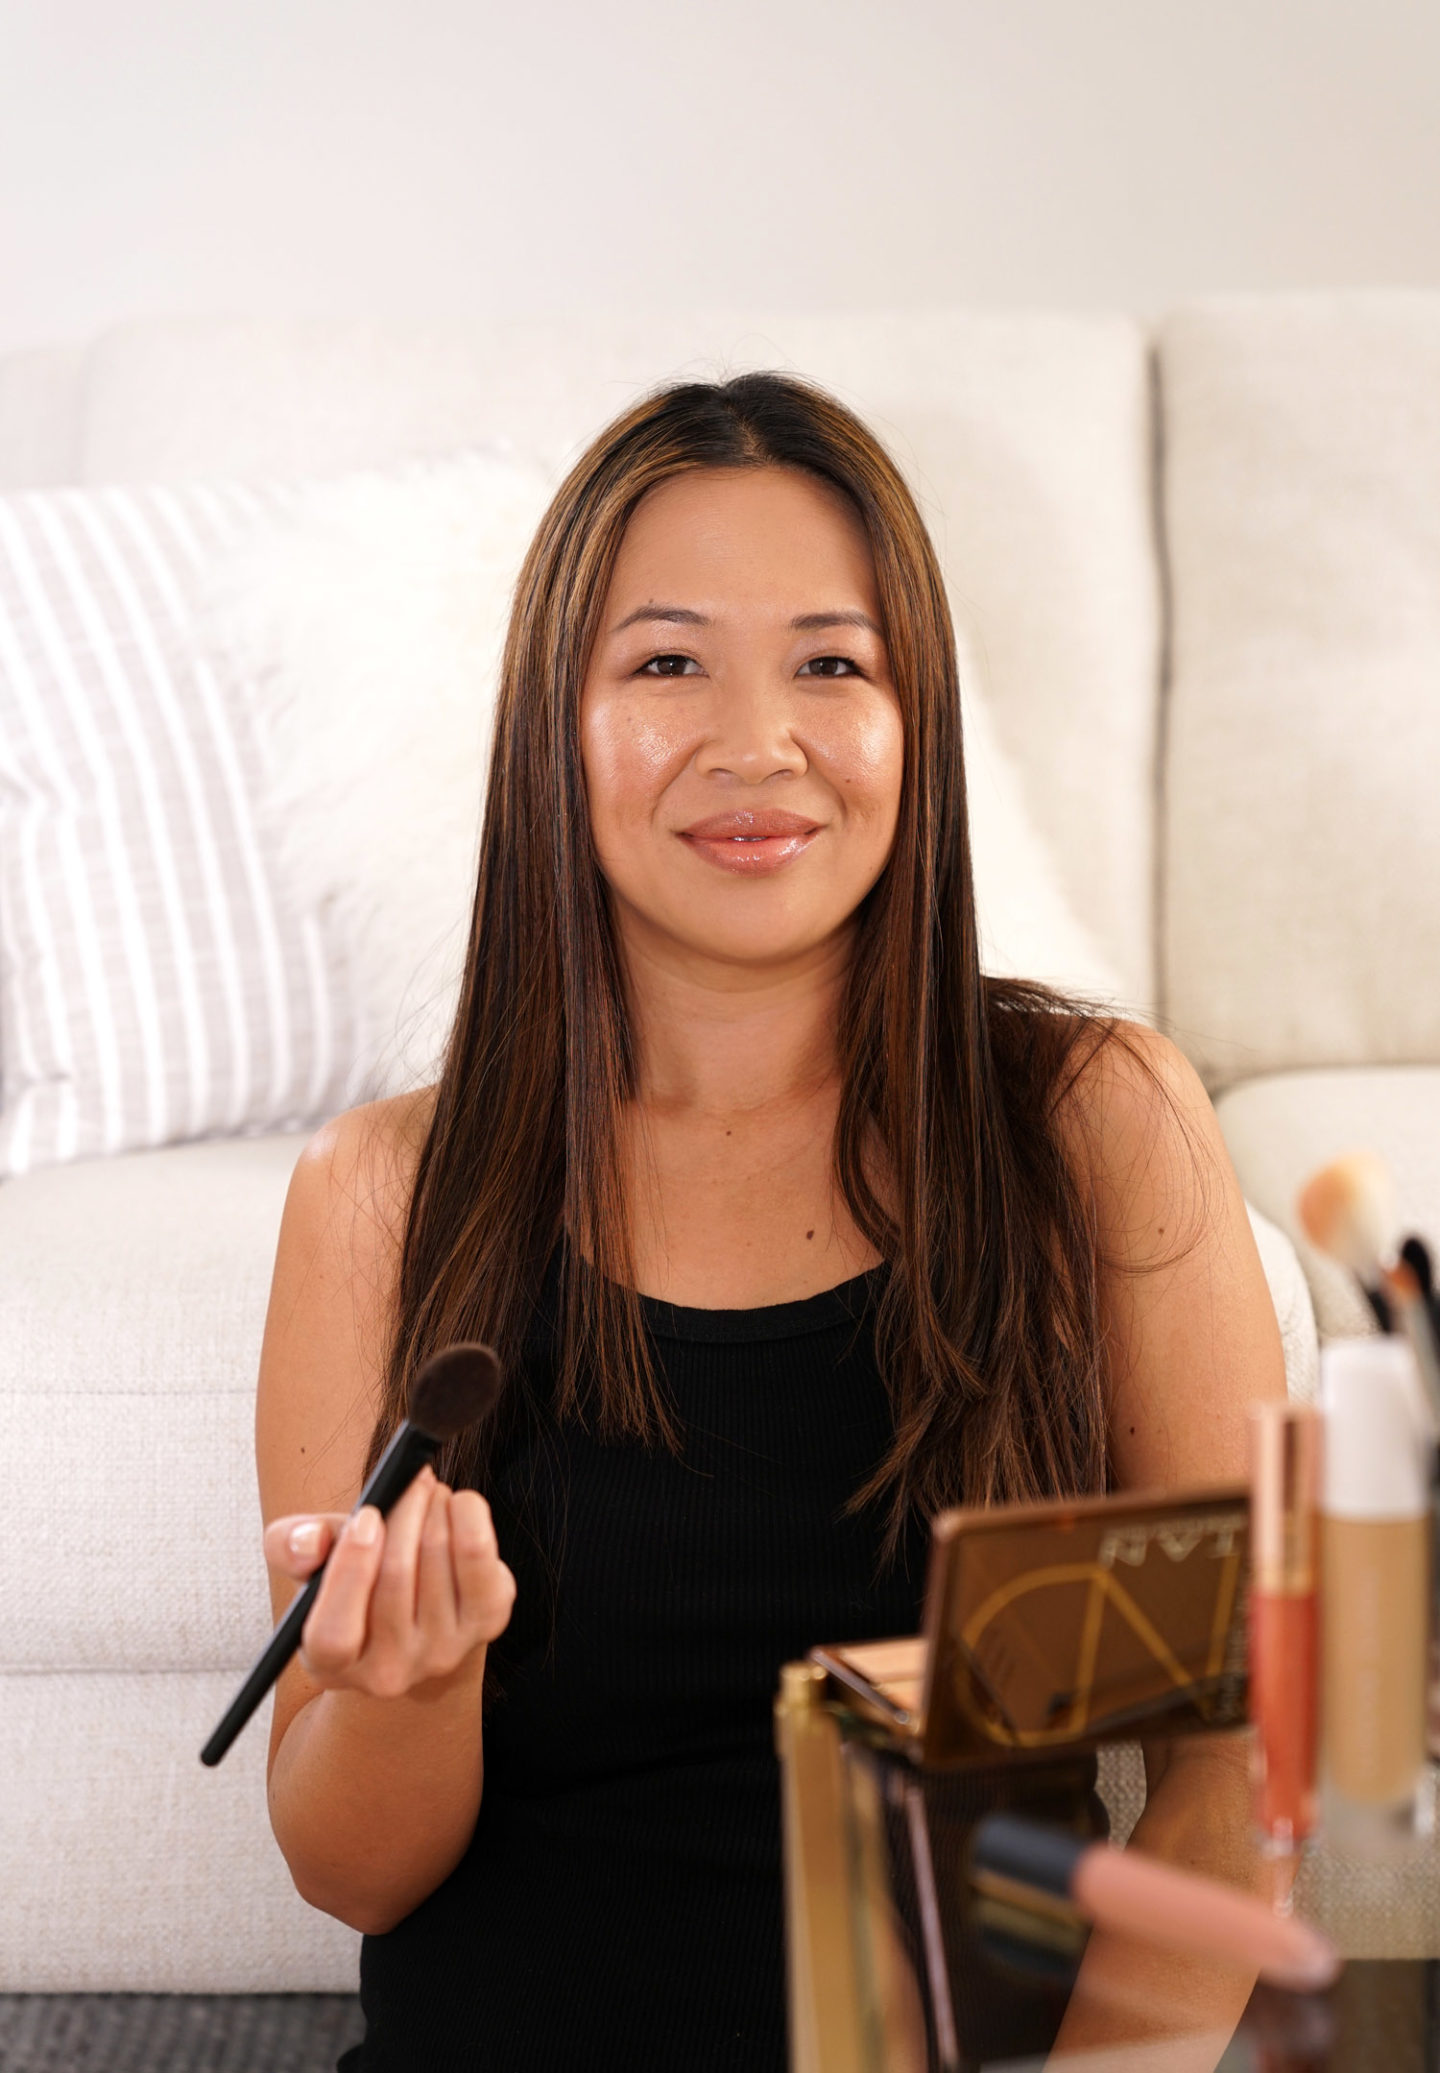 Natasha Denona Tan Bronze and Glow Makeup Look